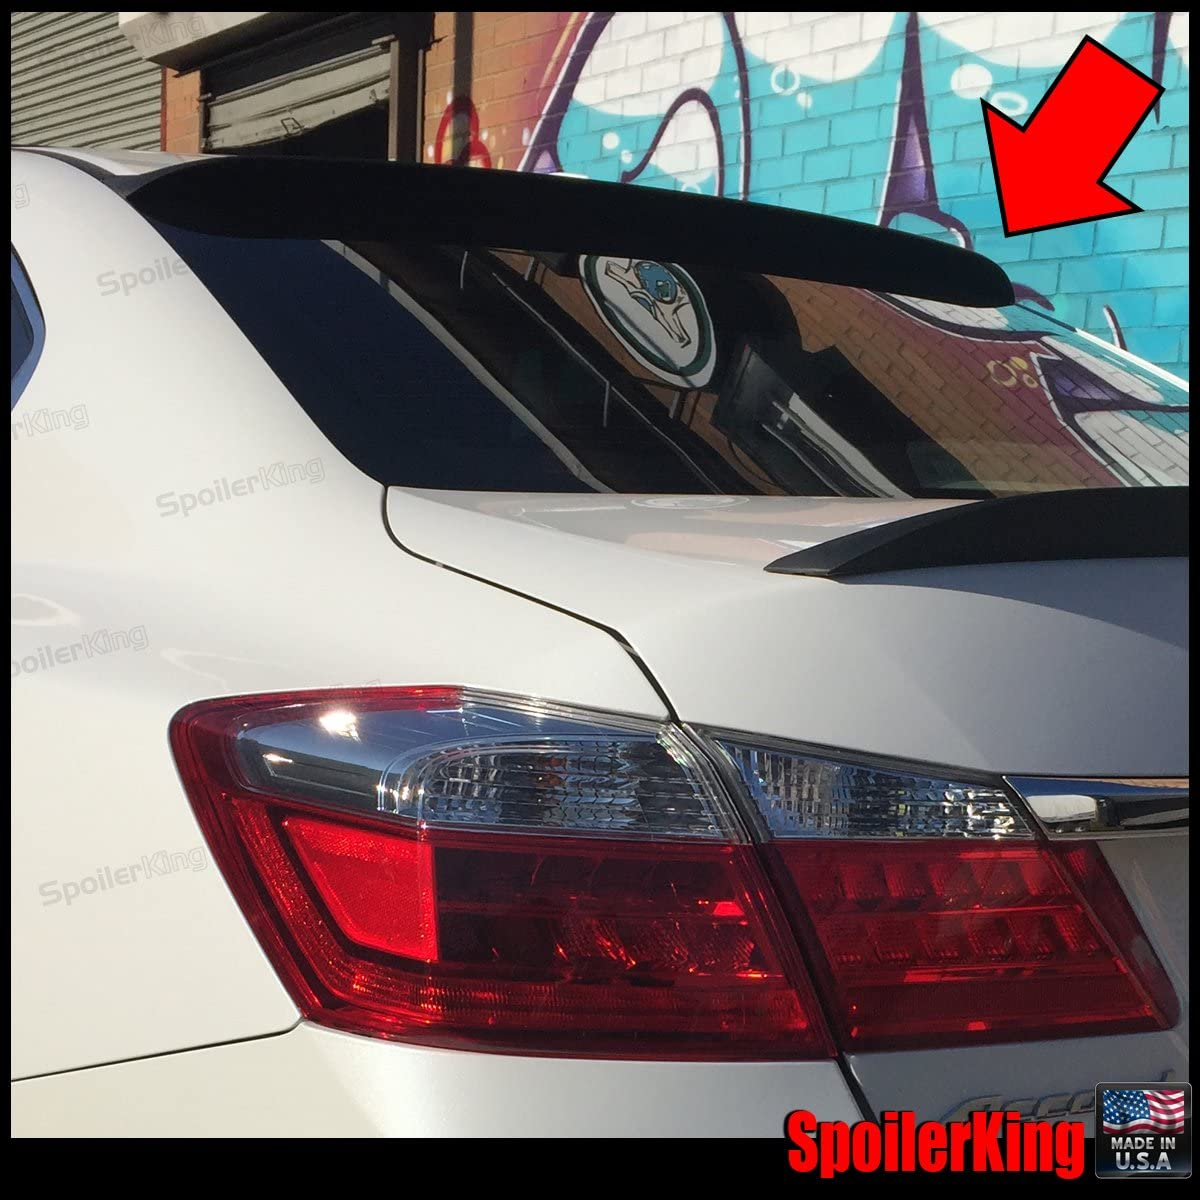 compatible with Honda Accord 4dr 2013-2017 Spoiler King Roof Spoiler 284R